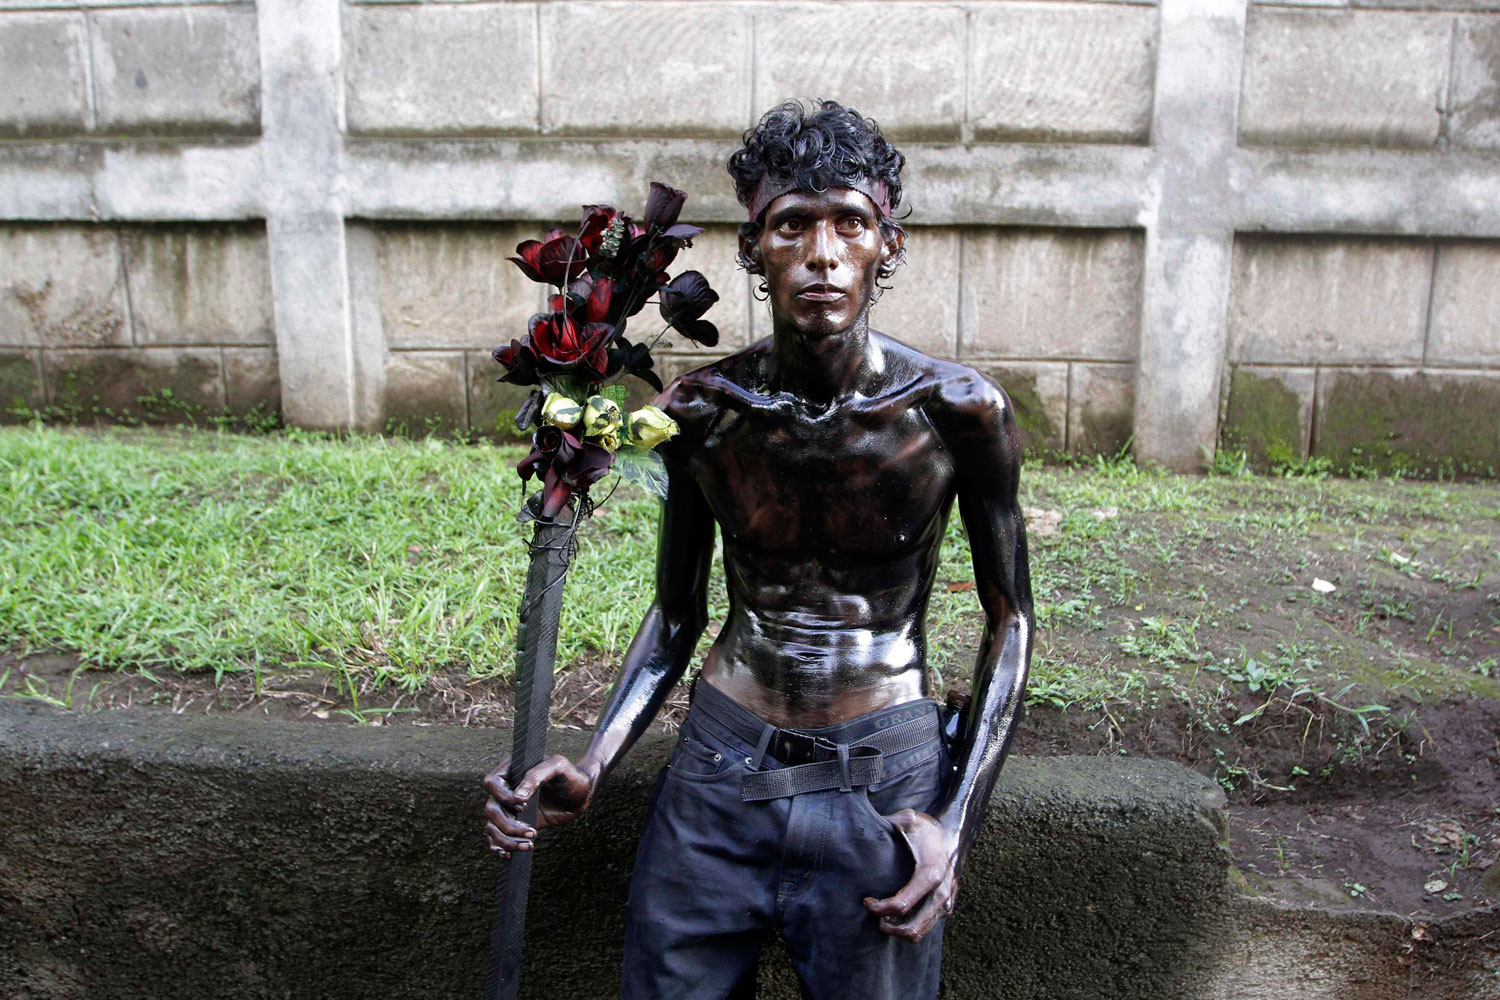 August 1, 2011. A devotee covered in motor oil takes a rest in the celebrations honoring the patron saint of Managua, Santo Domingo de Guzman, in Managua,  Nicaragua.